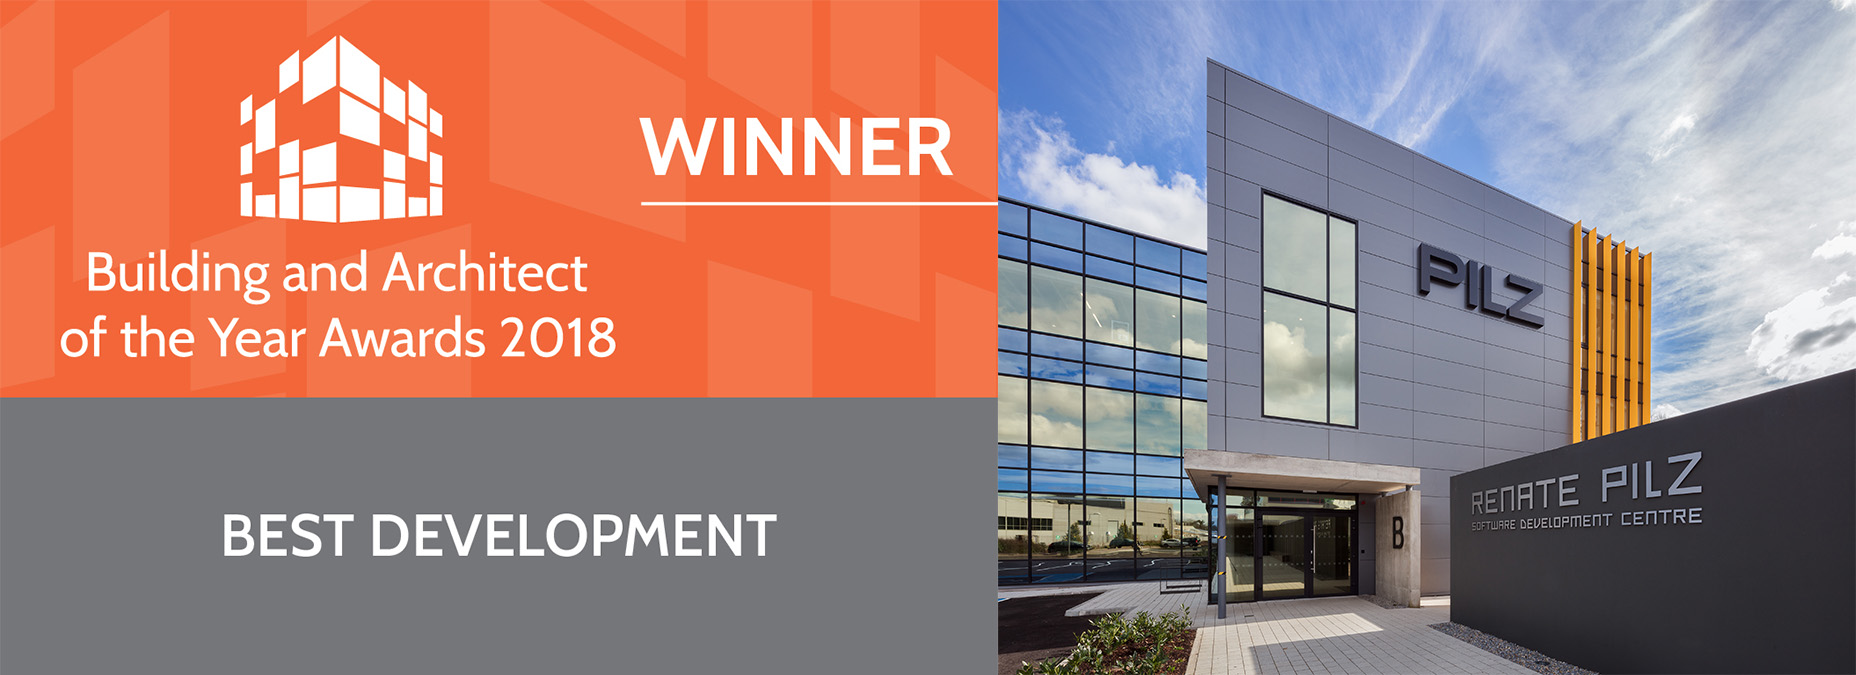 Building and Architect of the Year Awards 2018 - Winner - Best Development